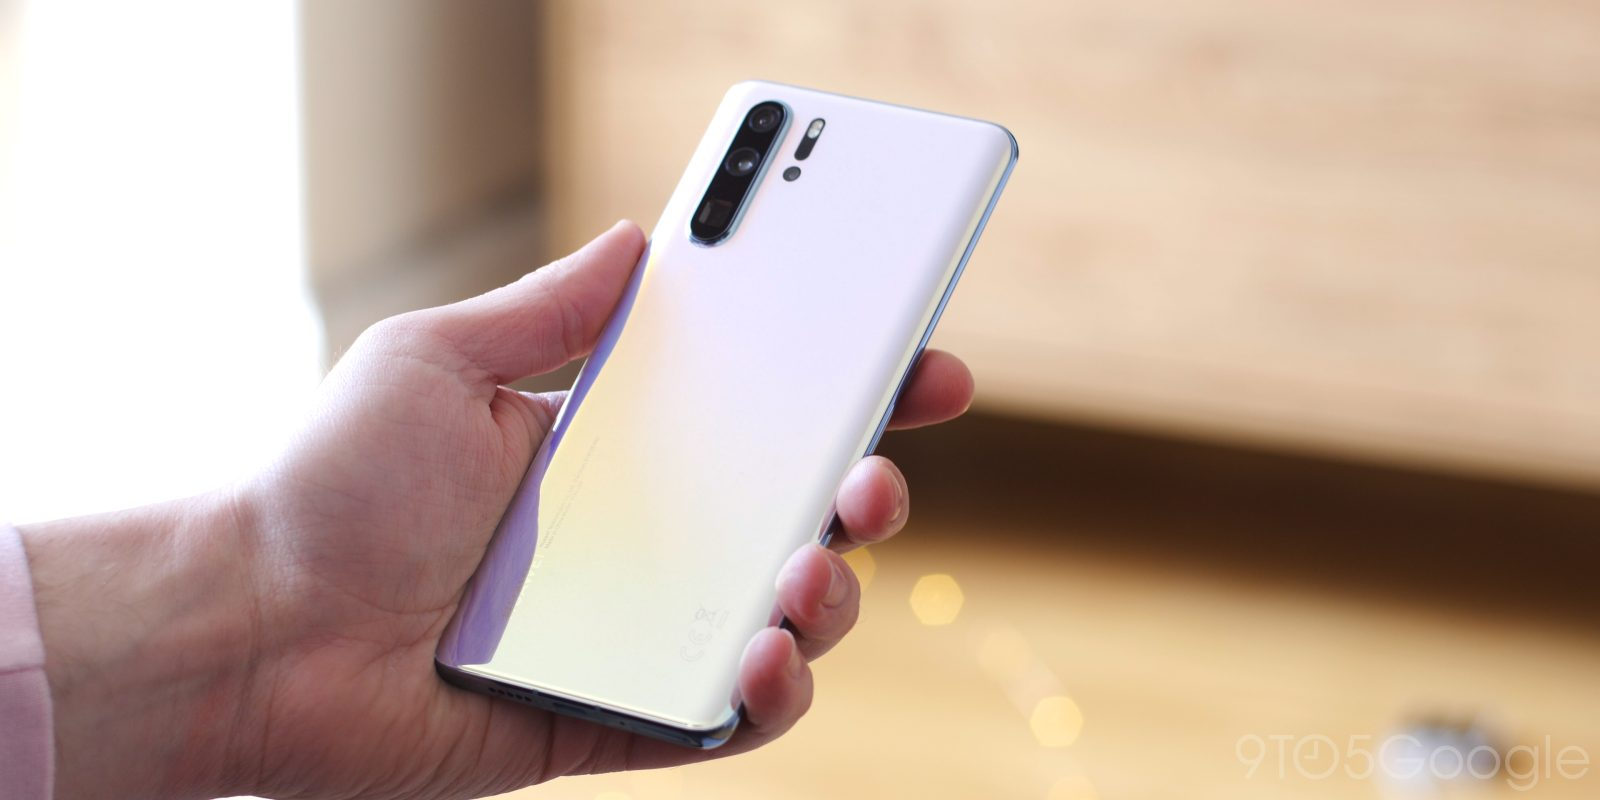 Huawei P30 Pro review: Pushing camera boundaries [Video] - 9to5Google